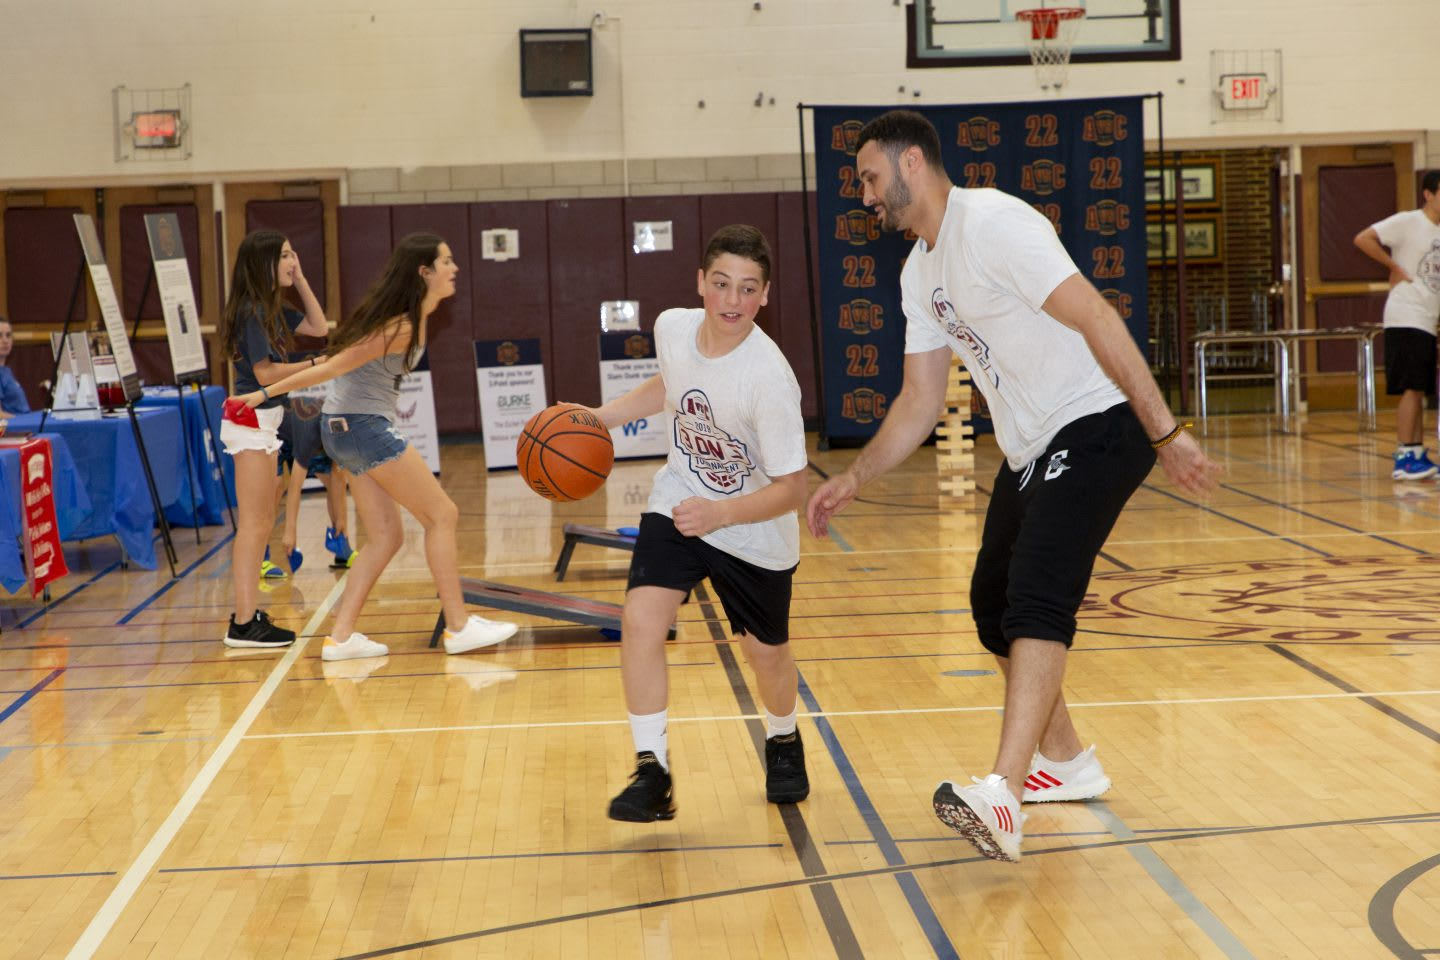 Larry Nance Jr. playing basketball with school children in a gym.